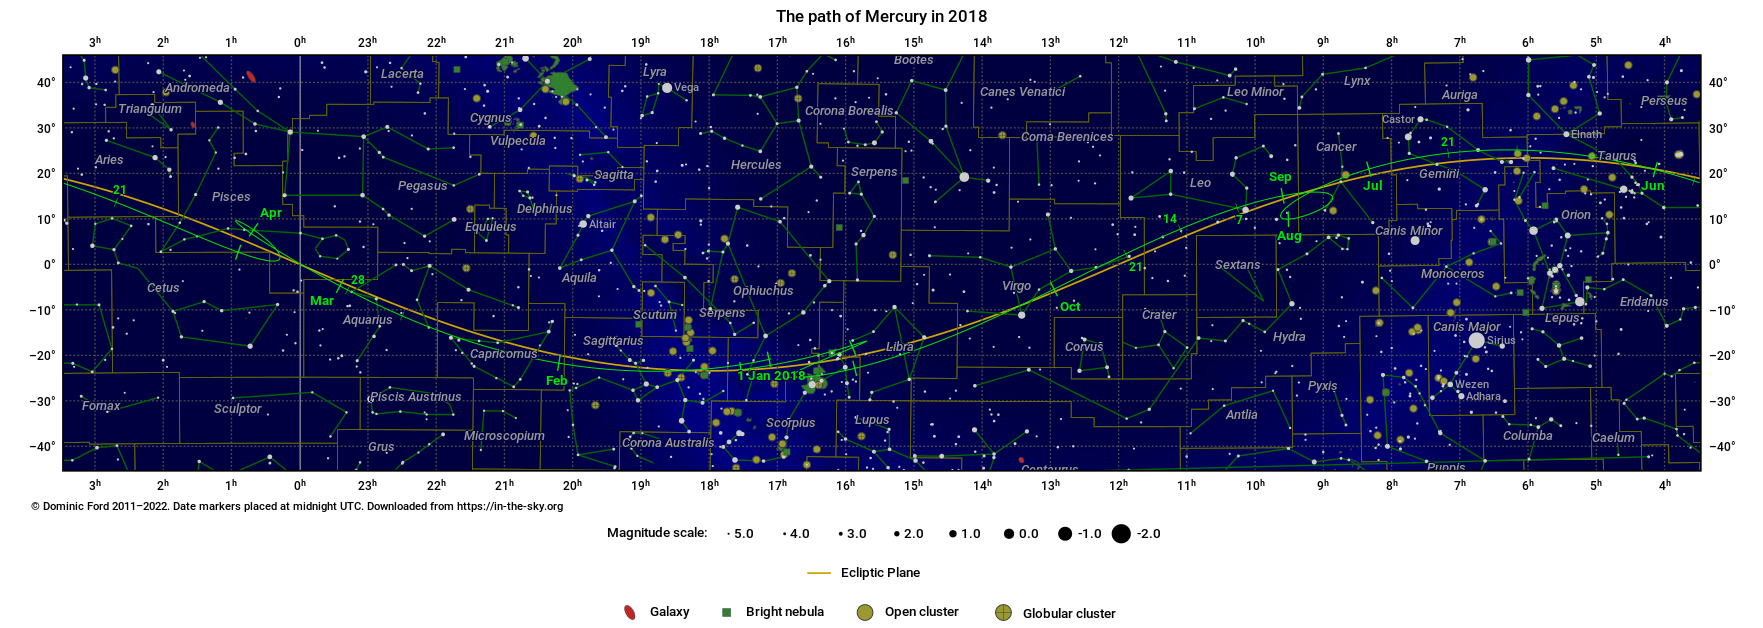 The path traced across the sky by Mercury in 2018